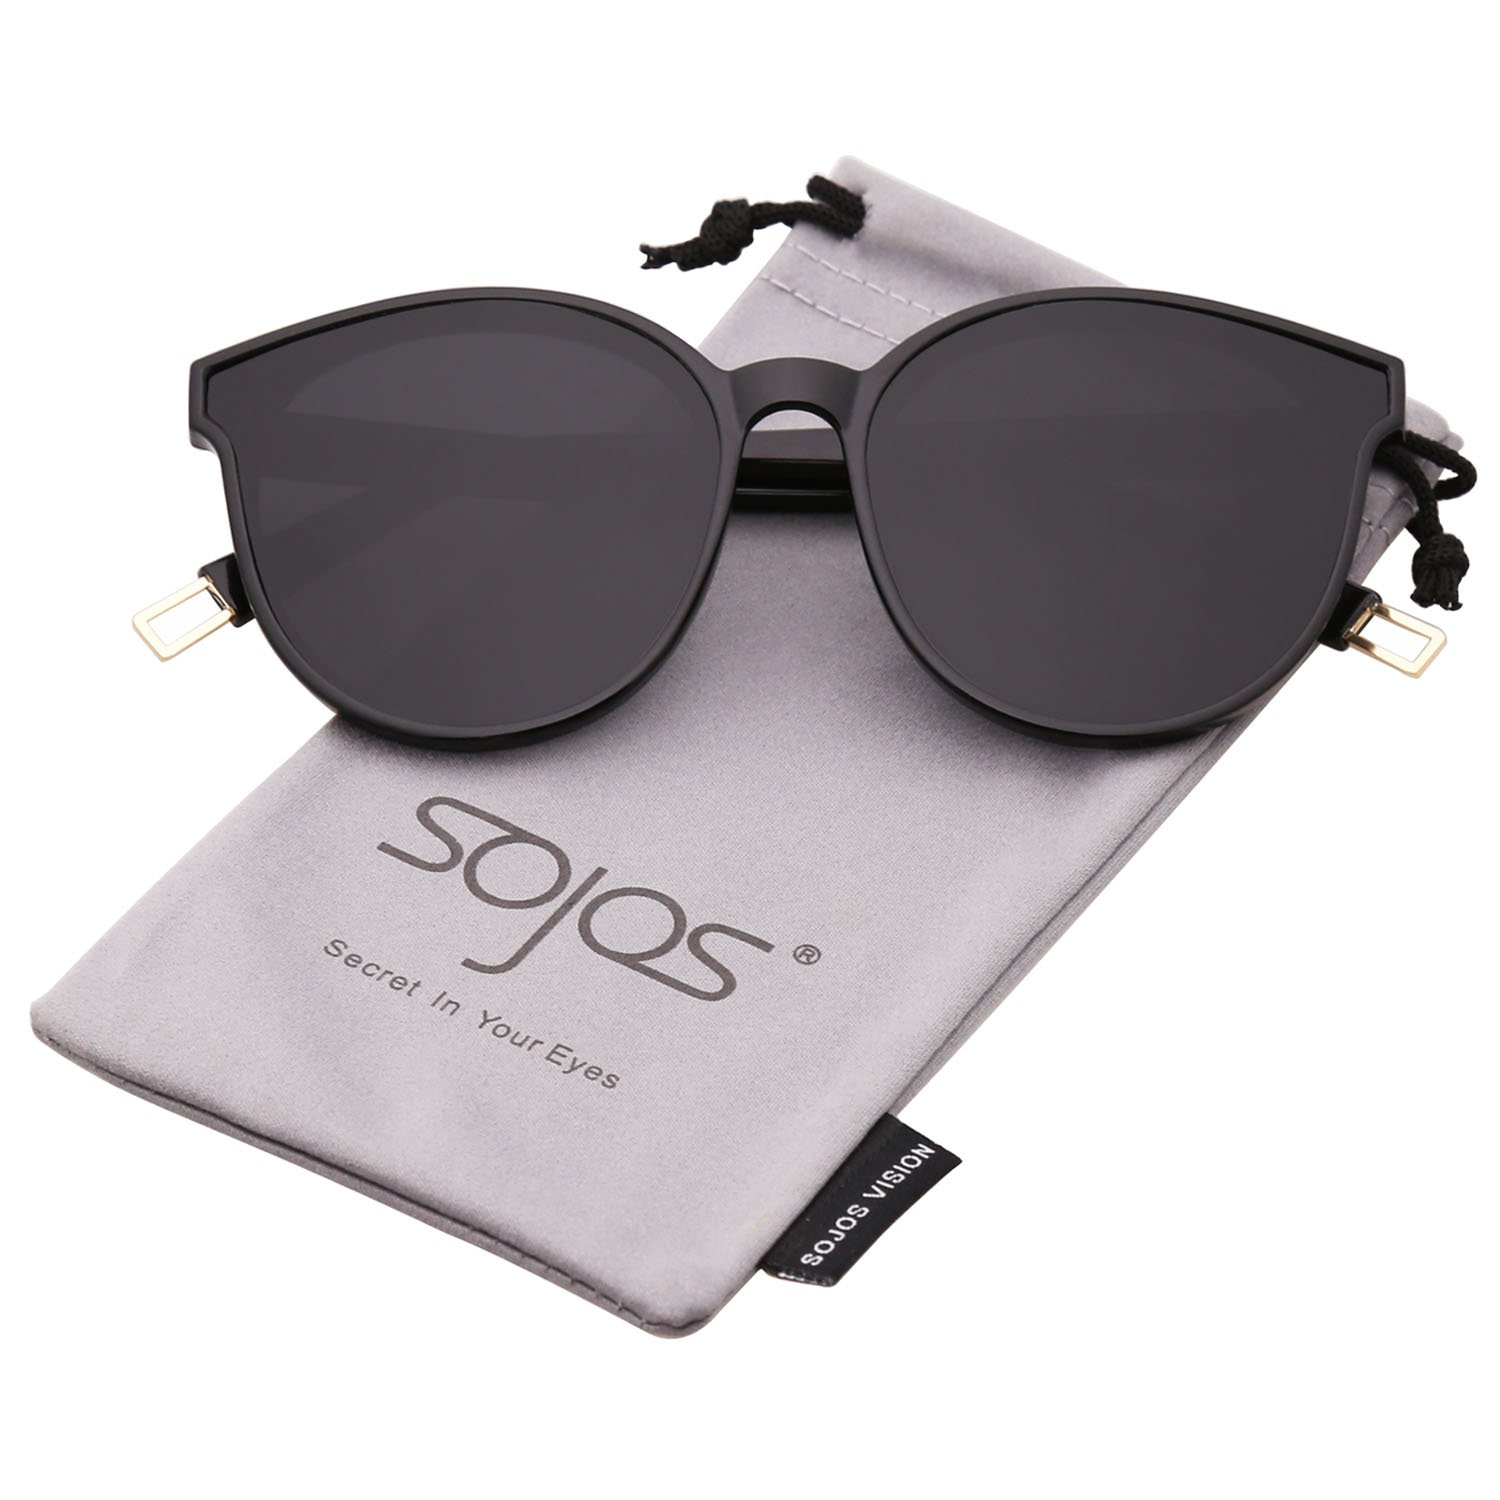 e3d4afb0cb04 SOJOS Fashion Round Sunglasses for Women Men Oversized Vintage Shades  SJ2057 with Black Frame Grey Lens at Amazon Women s Clothing store